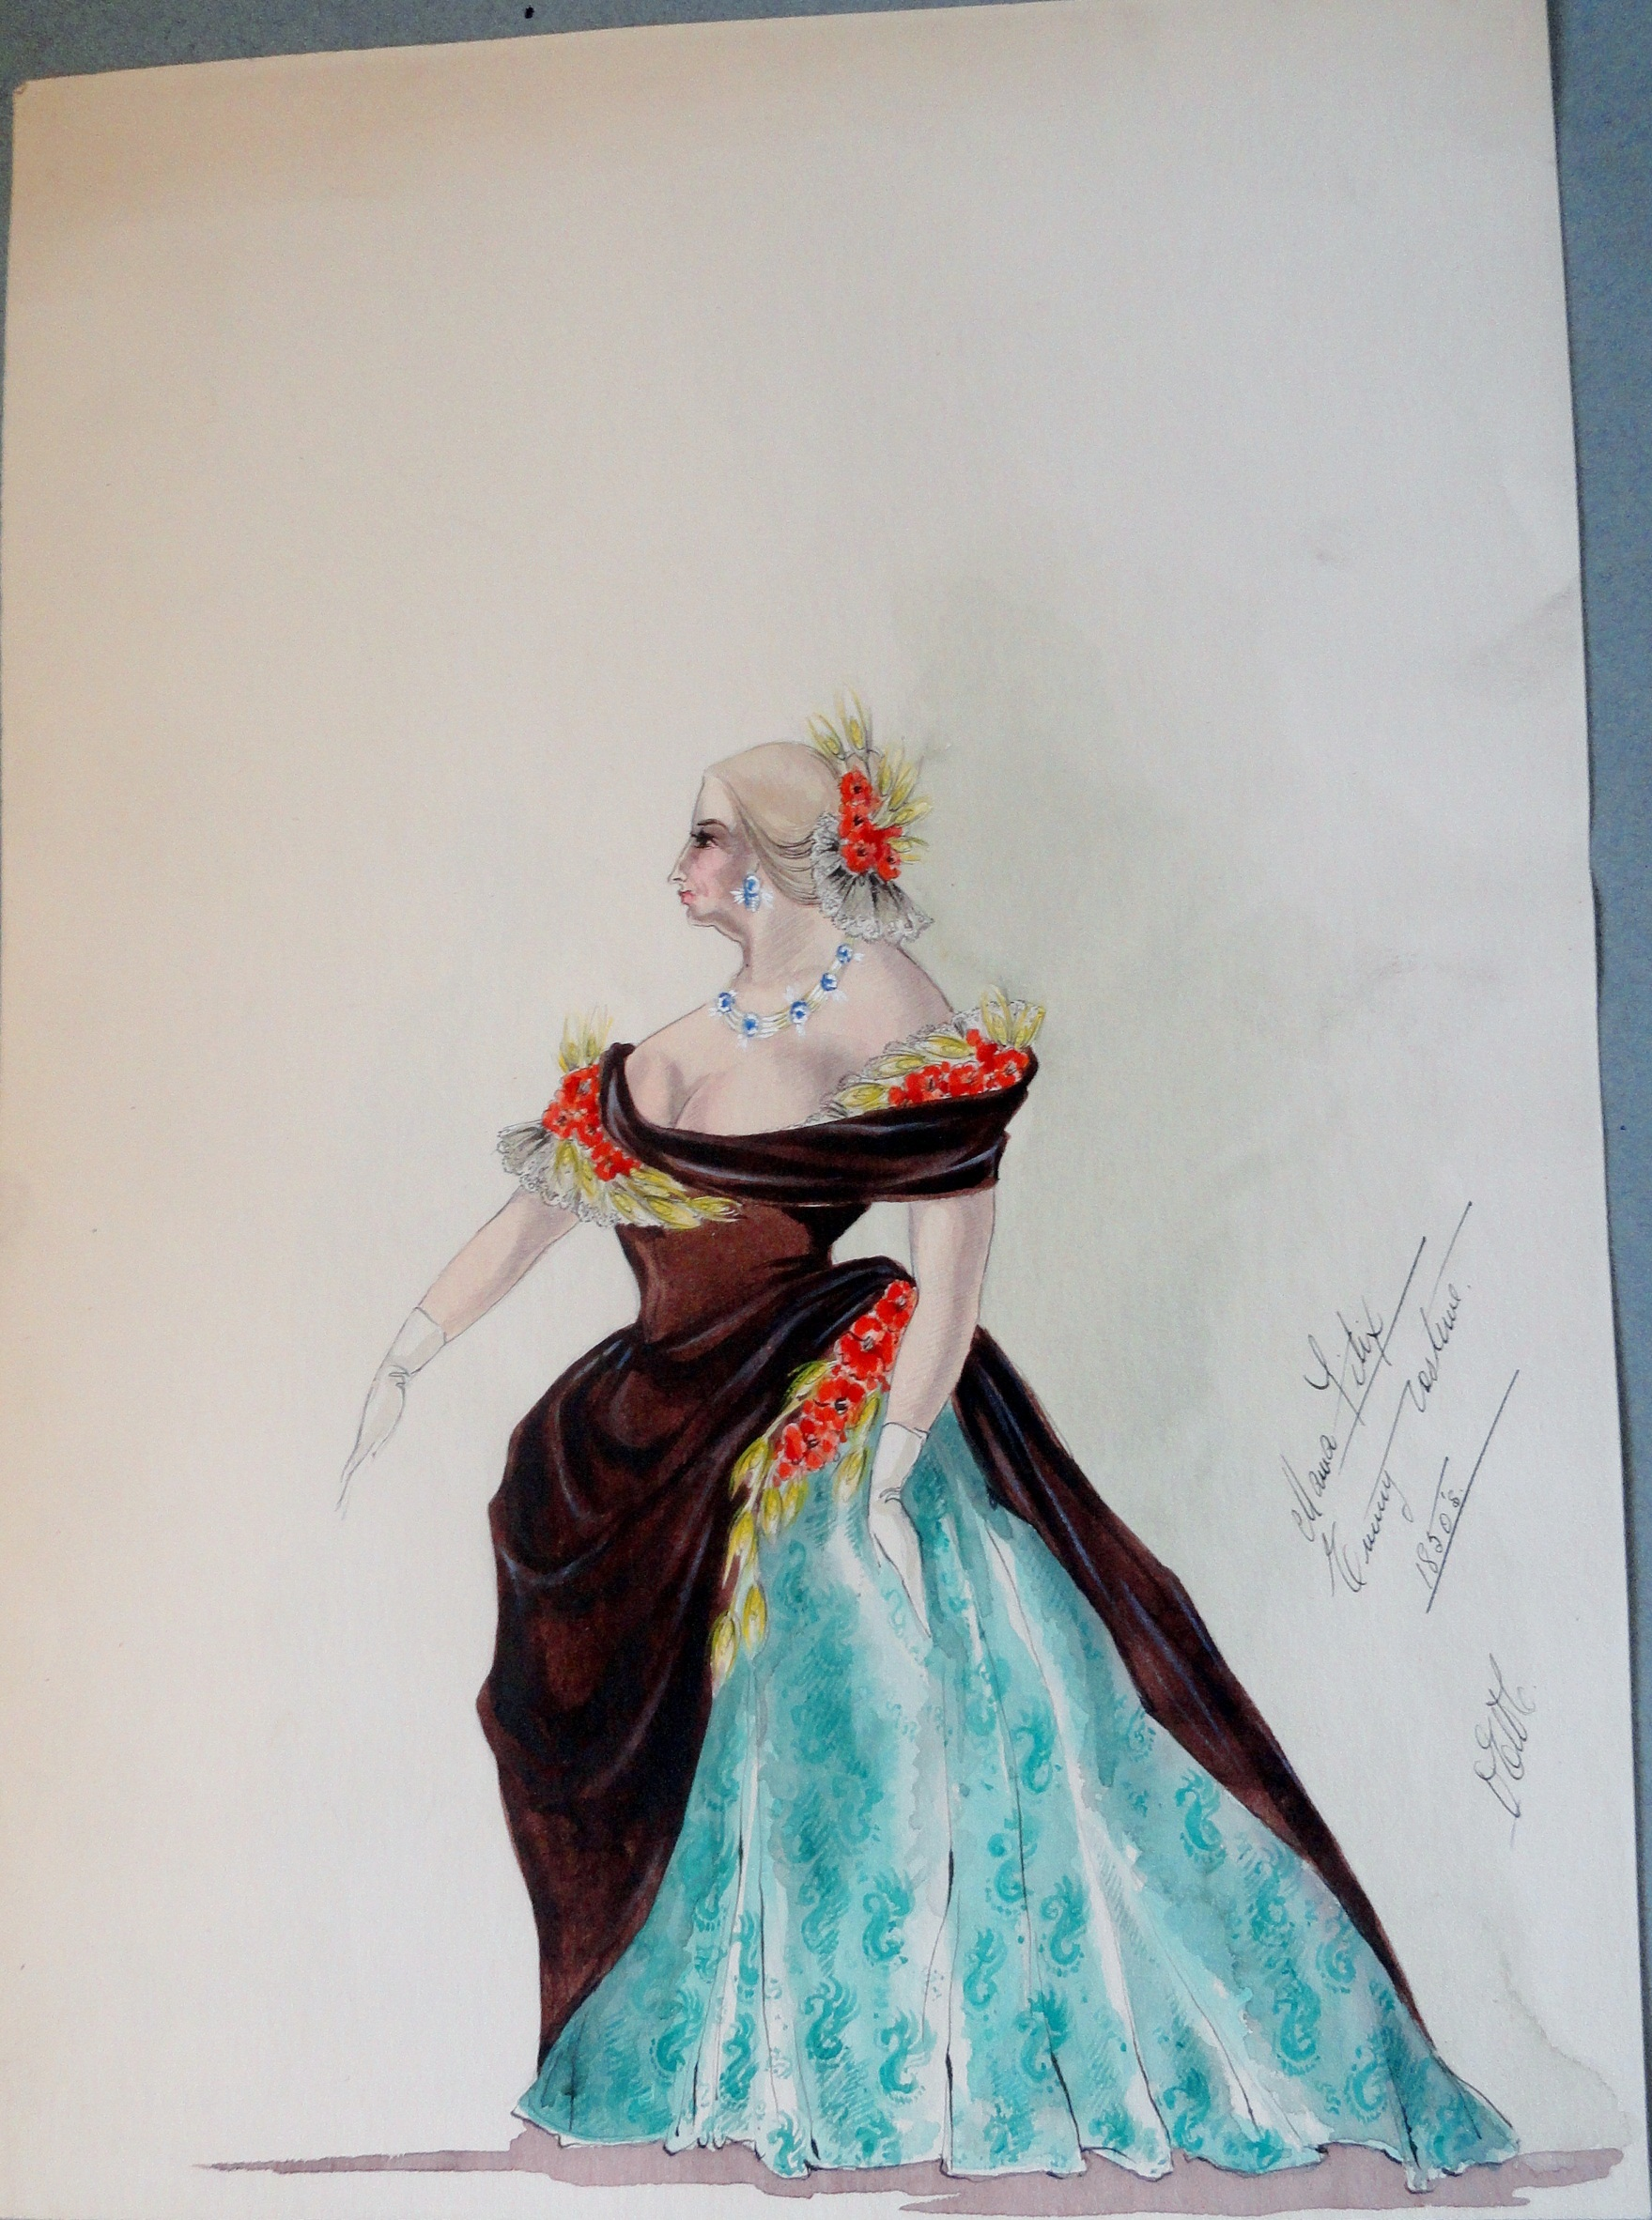 Mama Felix in Brown and Blue gown with notes. From the Rachel Portfolio by Owen Hyde Clark.